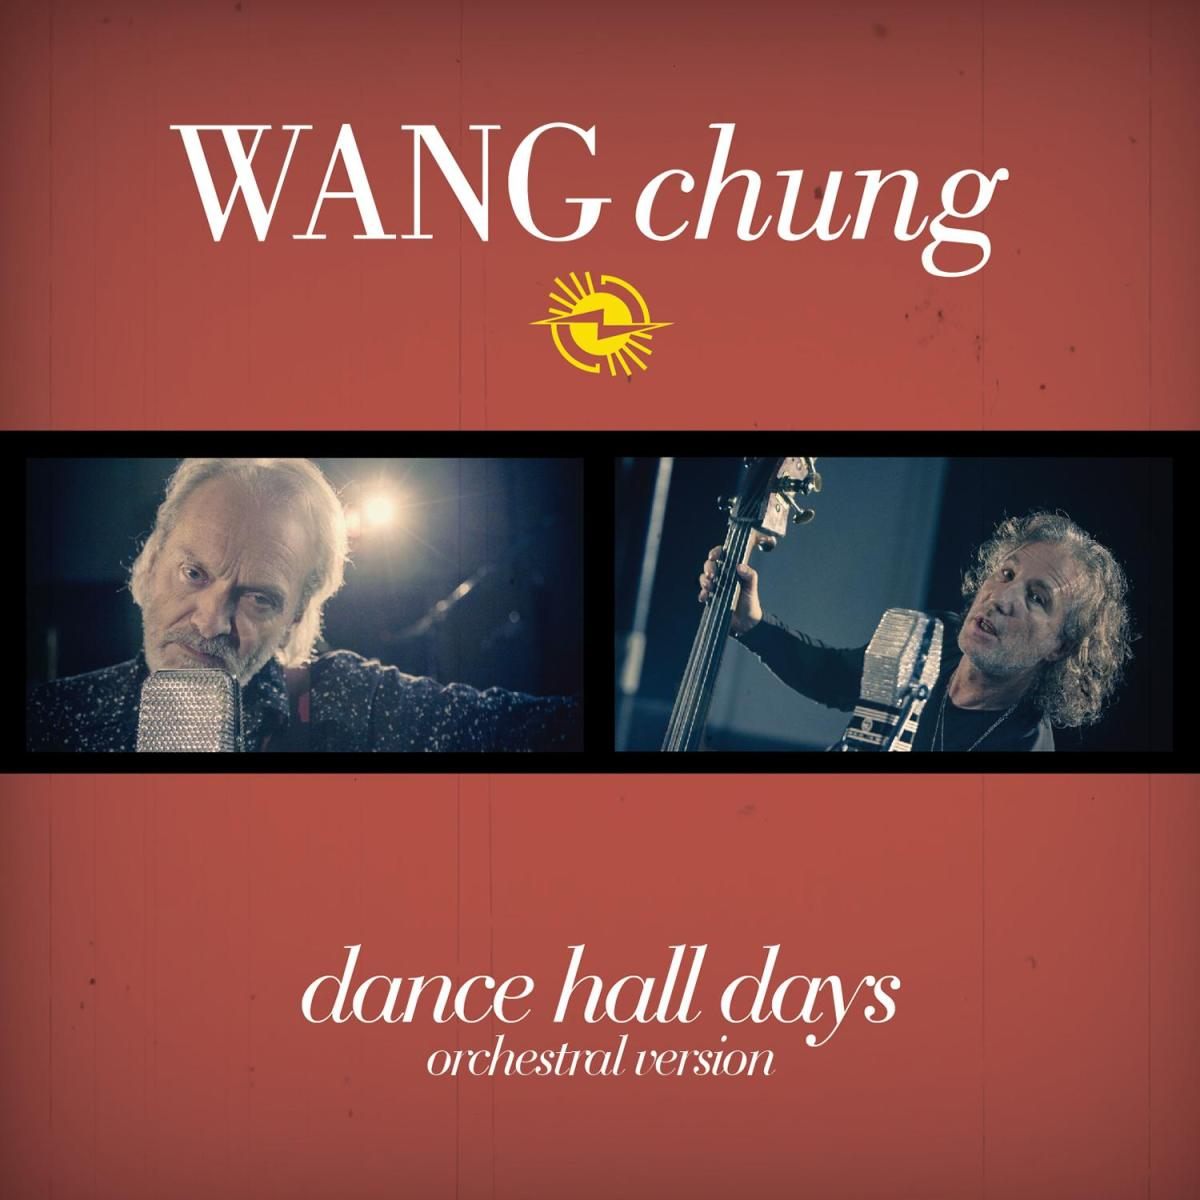 Wang Chung Reactivate With Orchestra